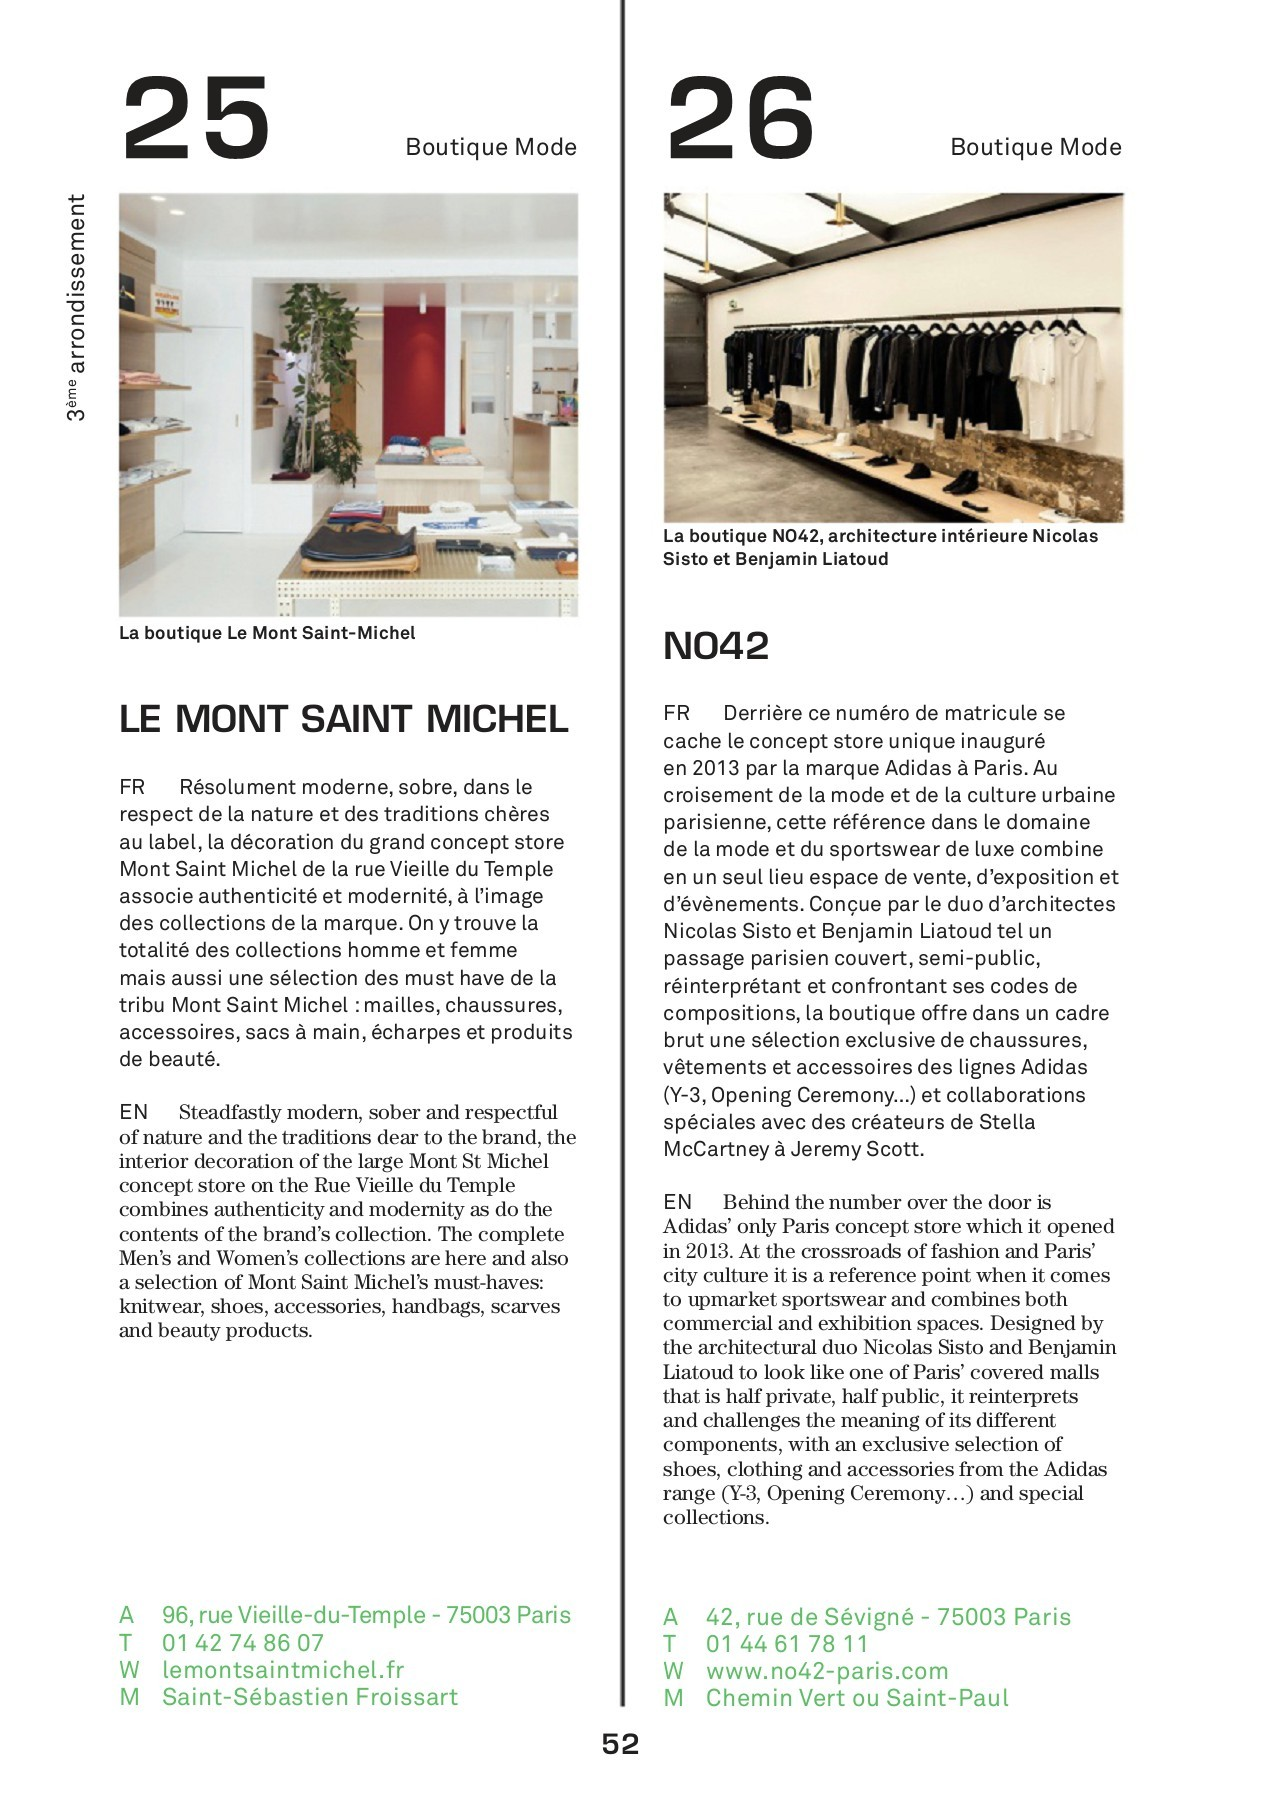 Prix Corian Au M2 2019-04-01 intramuros-paris design guide-flip book pages 51